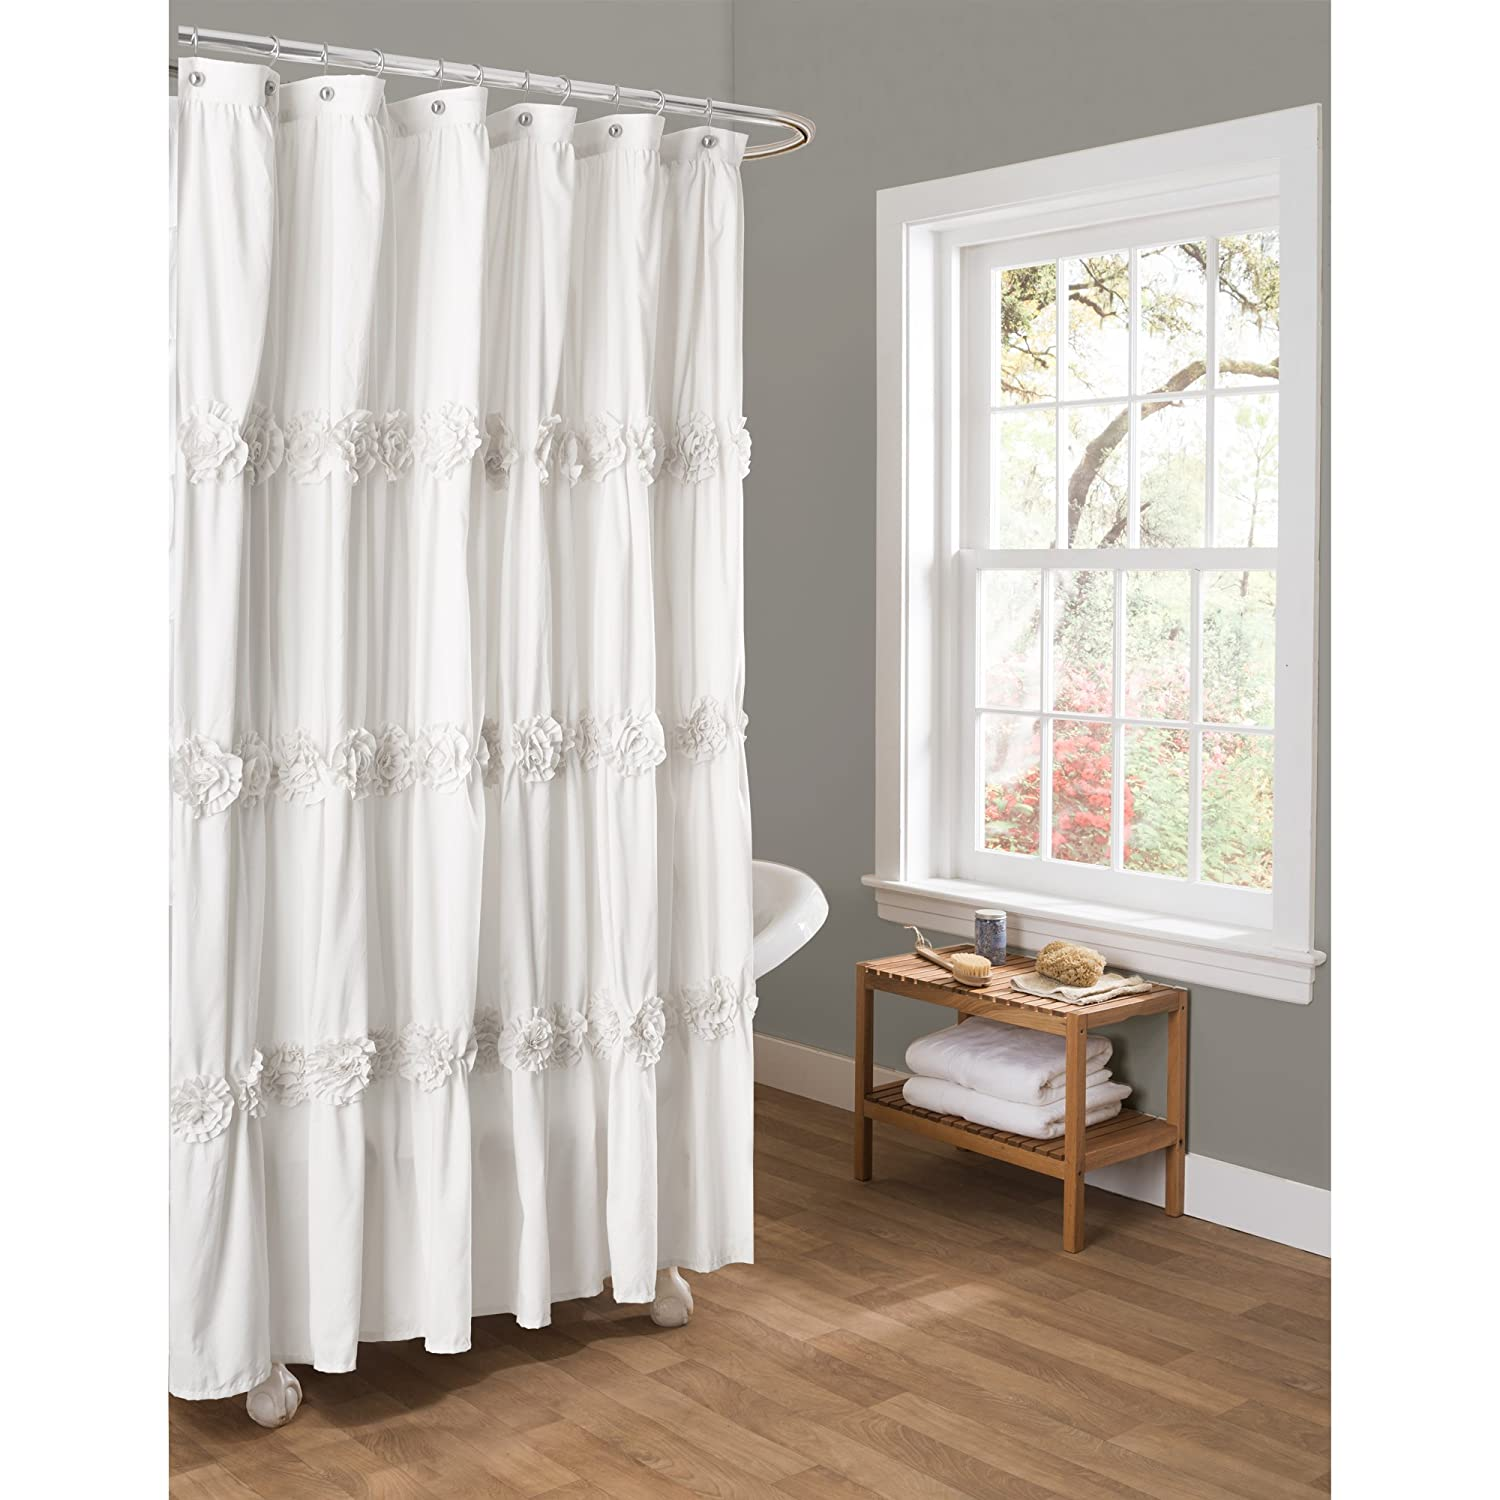 to sets applied piece with set lodge your bath curtain adirondack decor a curtains home shower maroon exciting